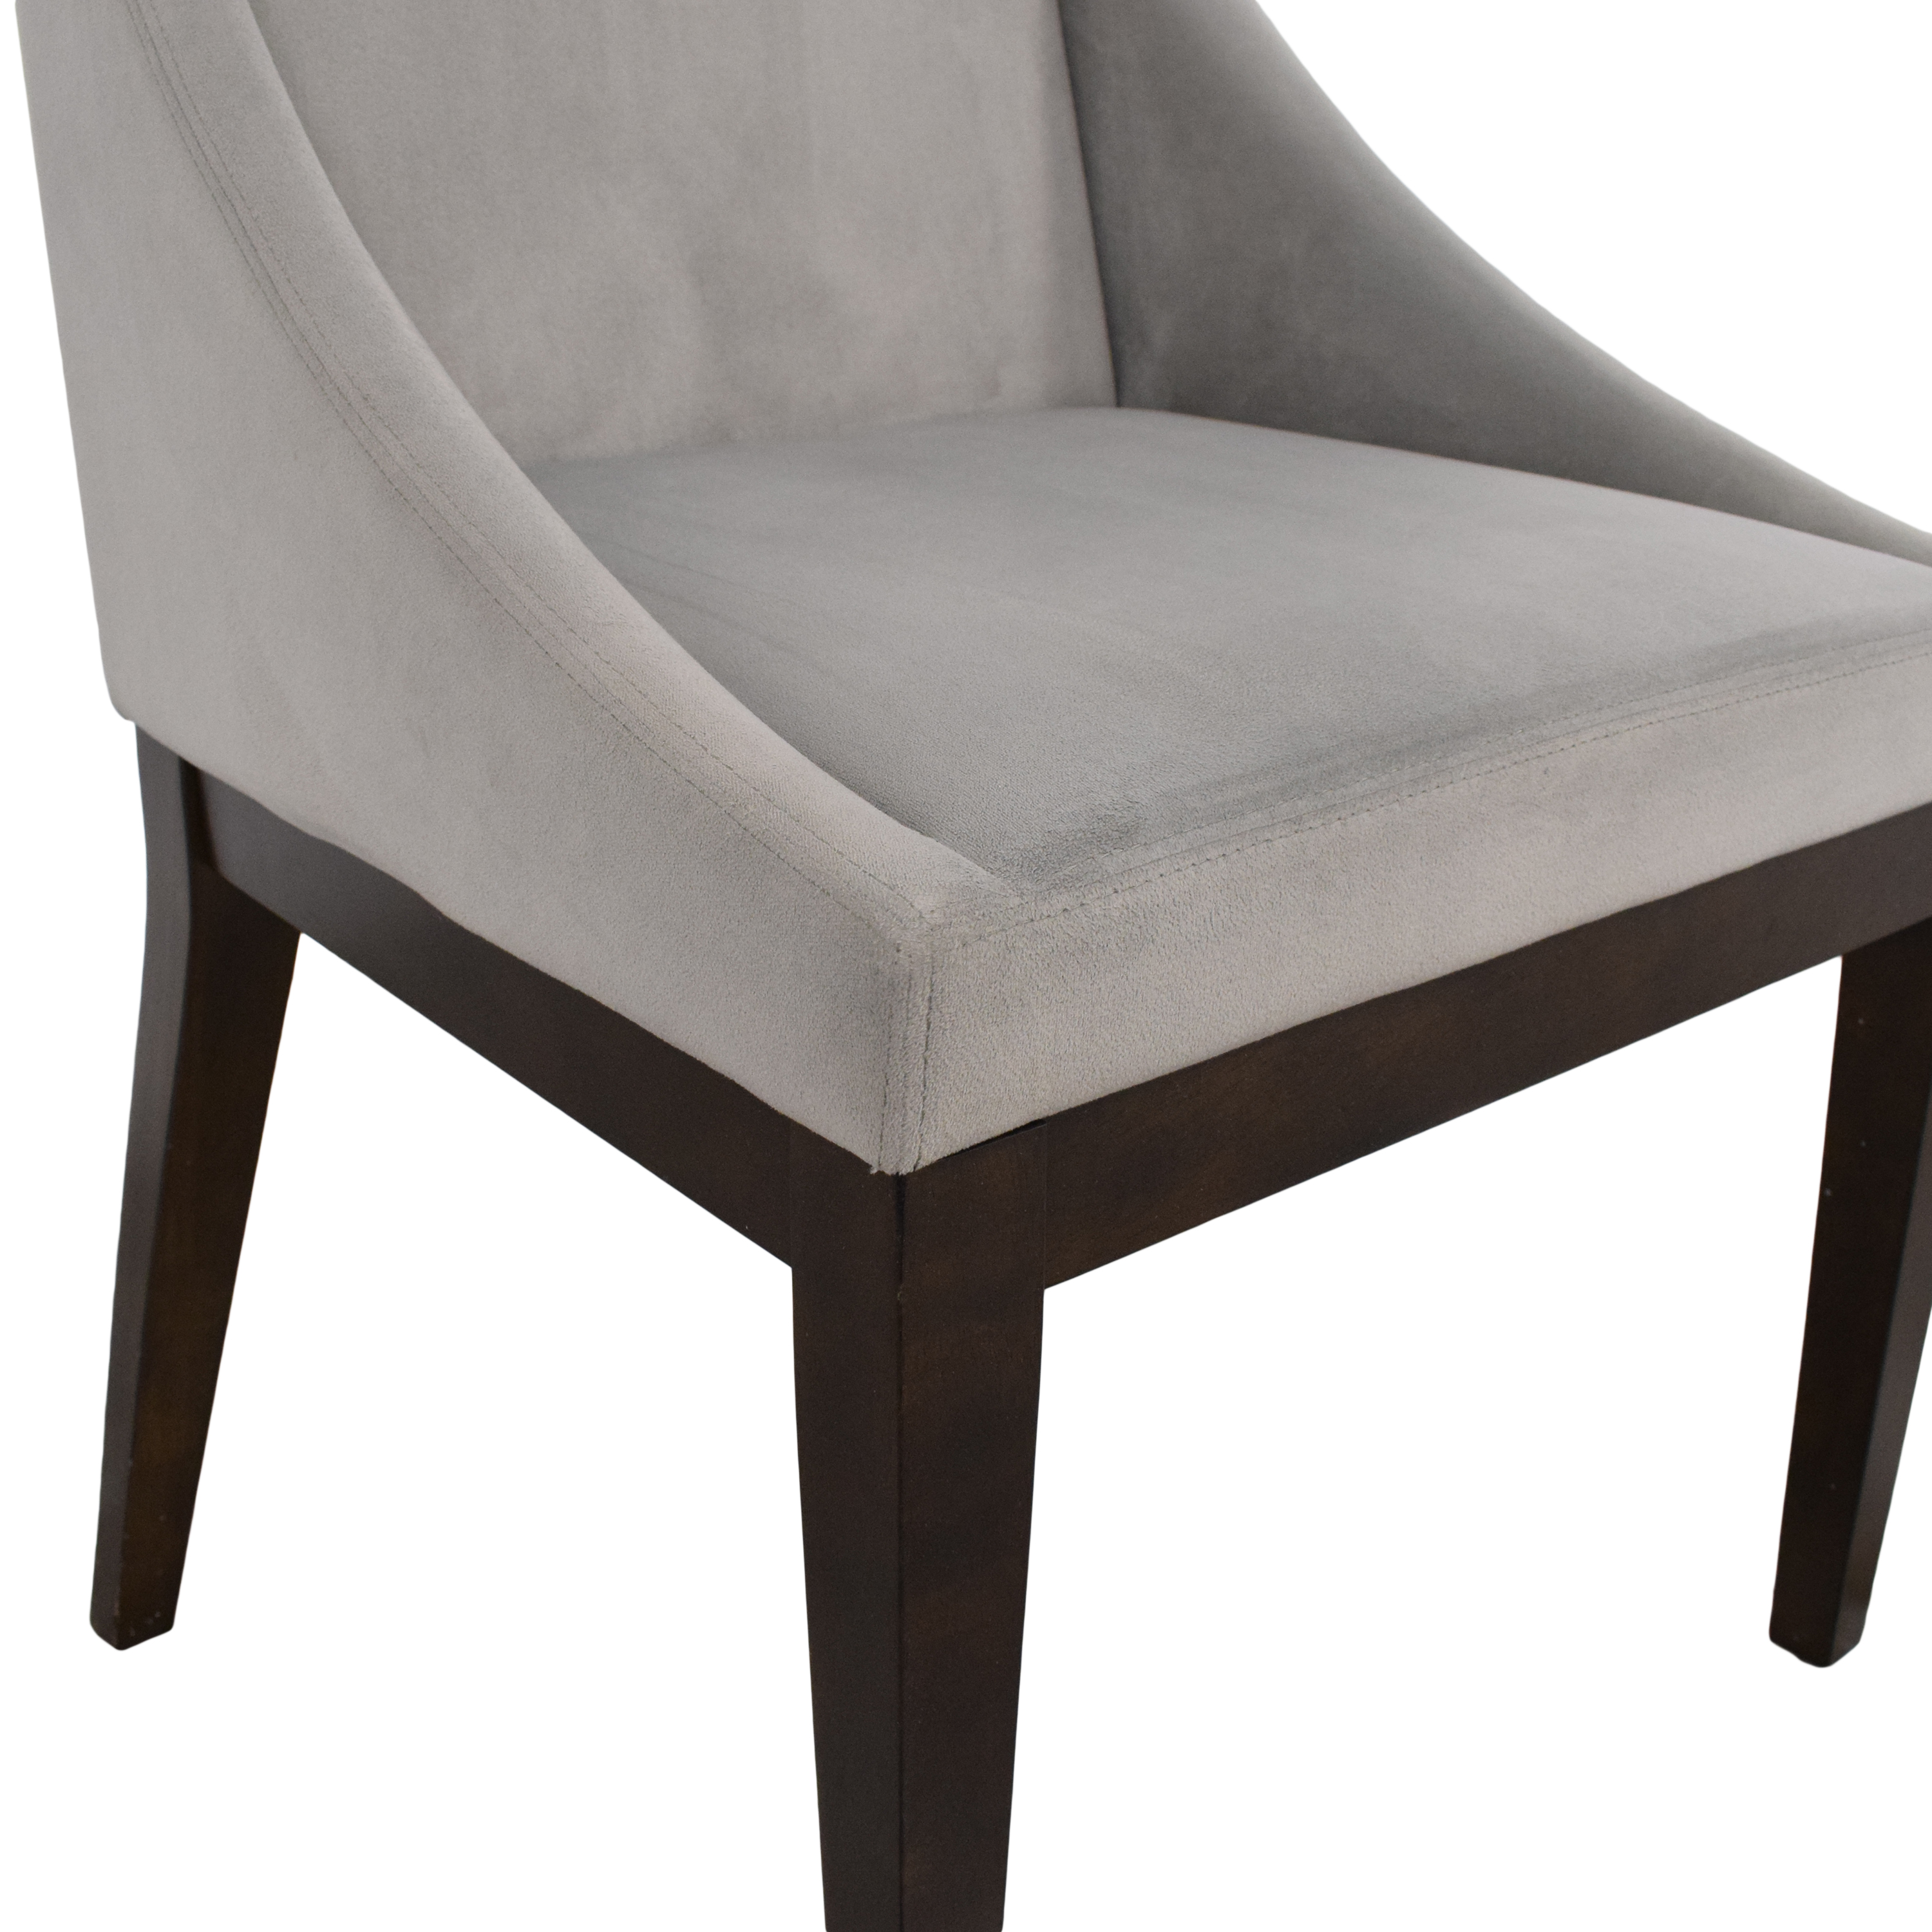 West Elm West Elm Curved Upholstered Dining Chair ma